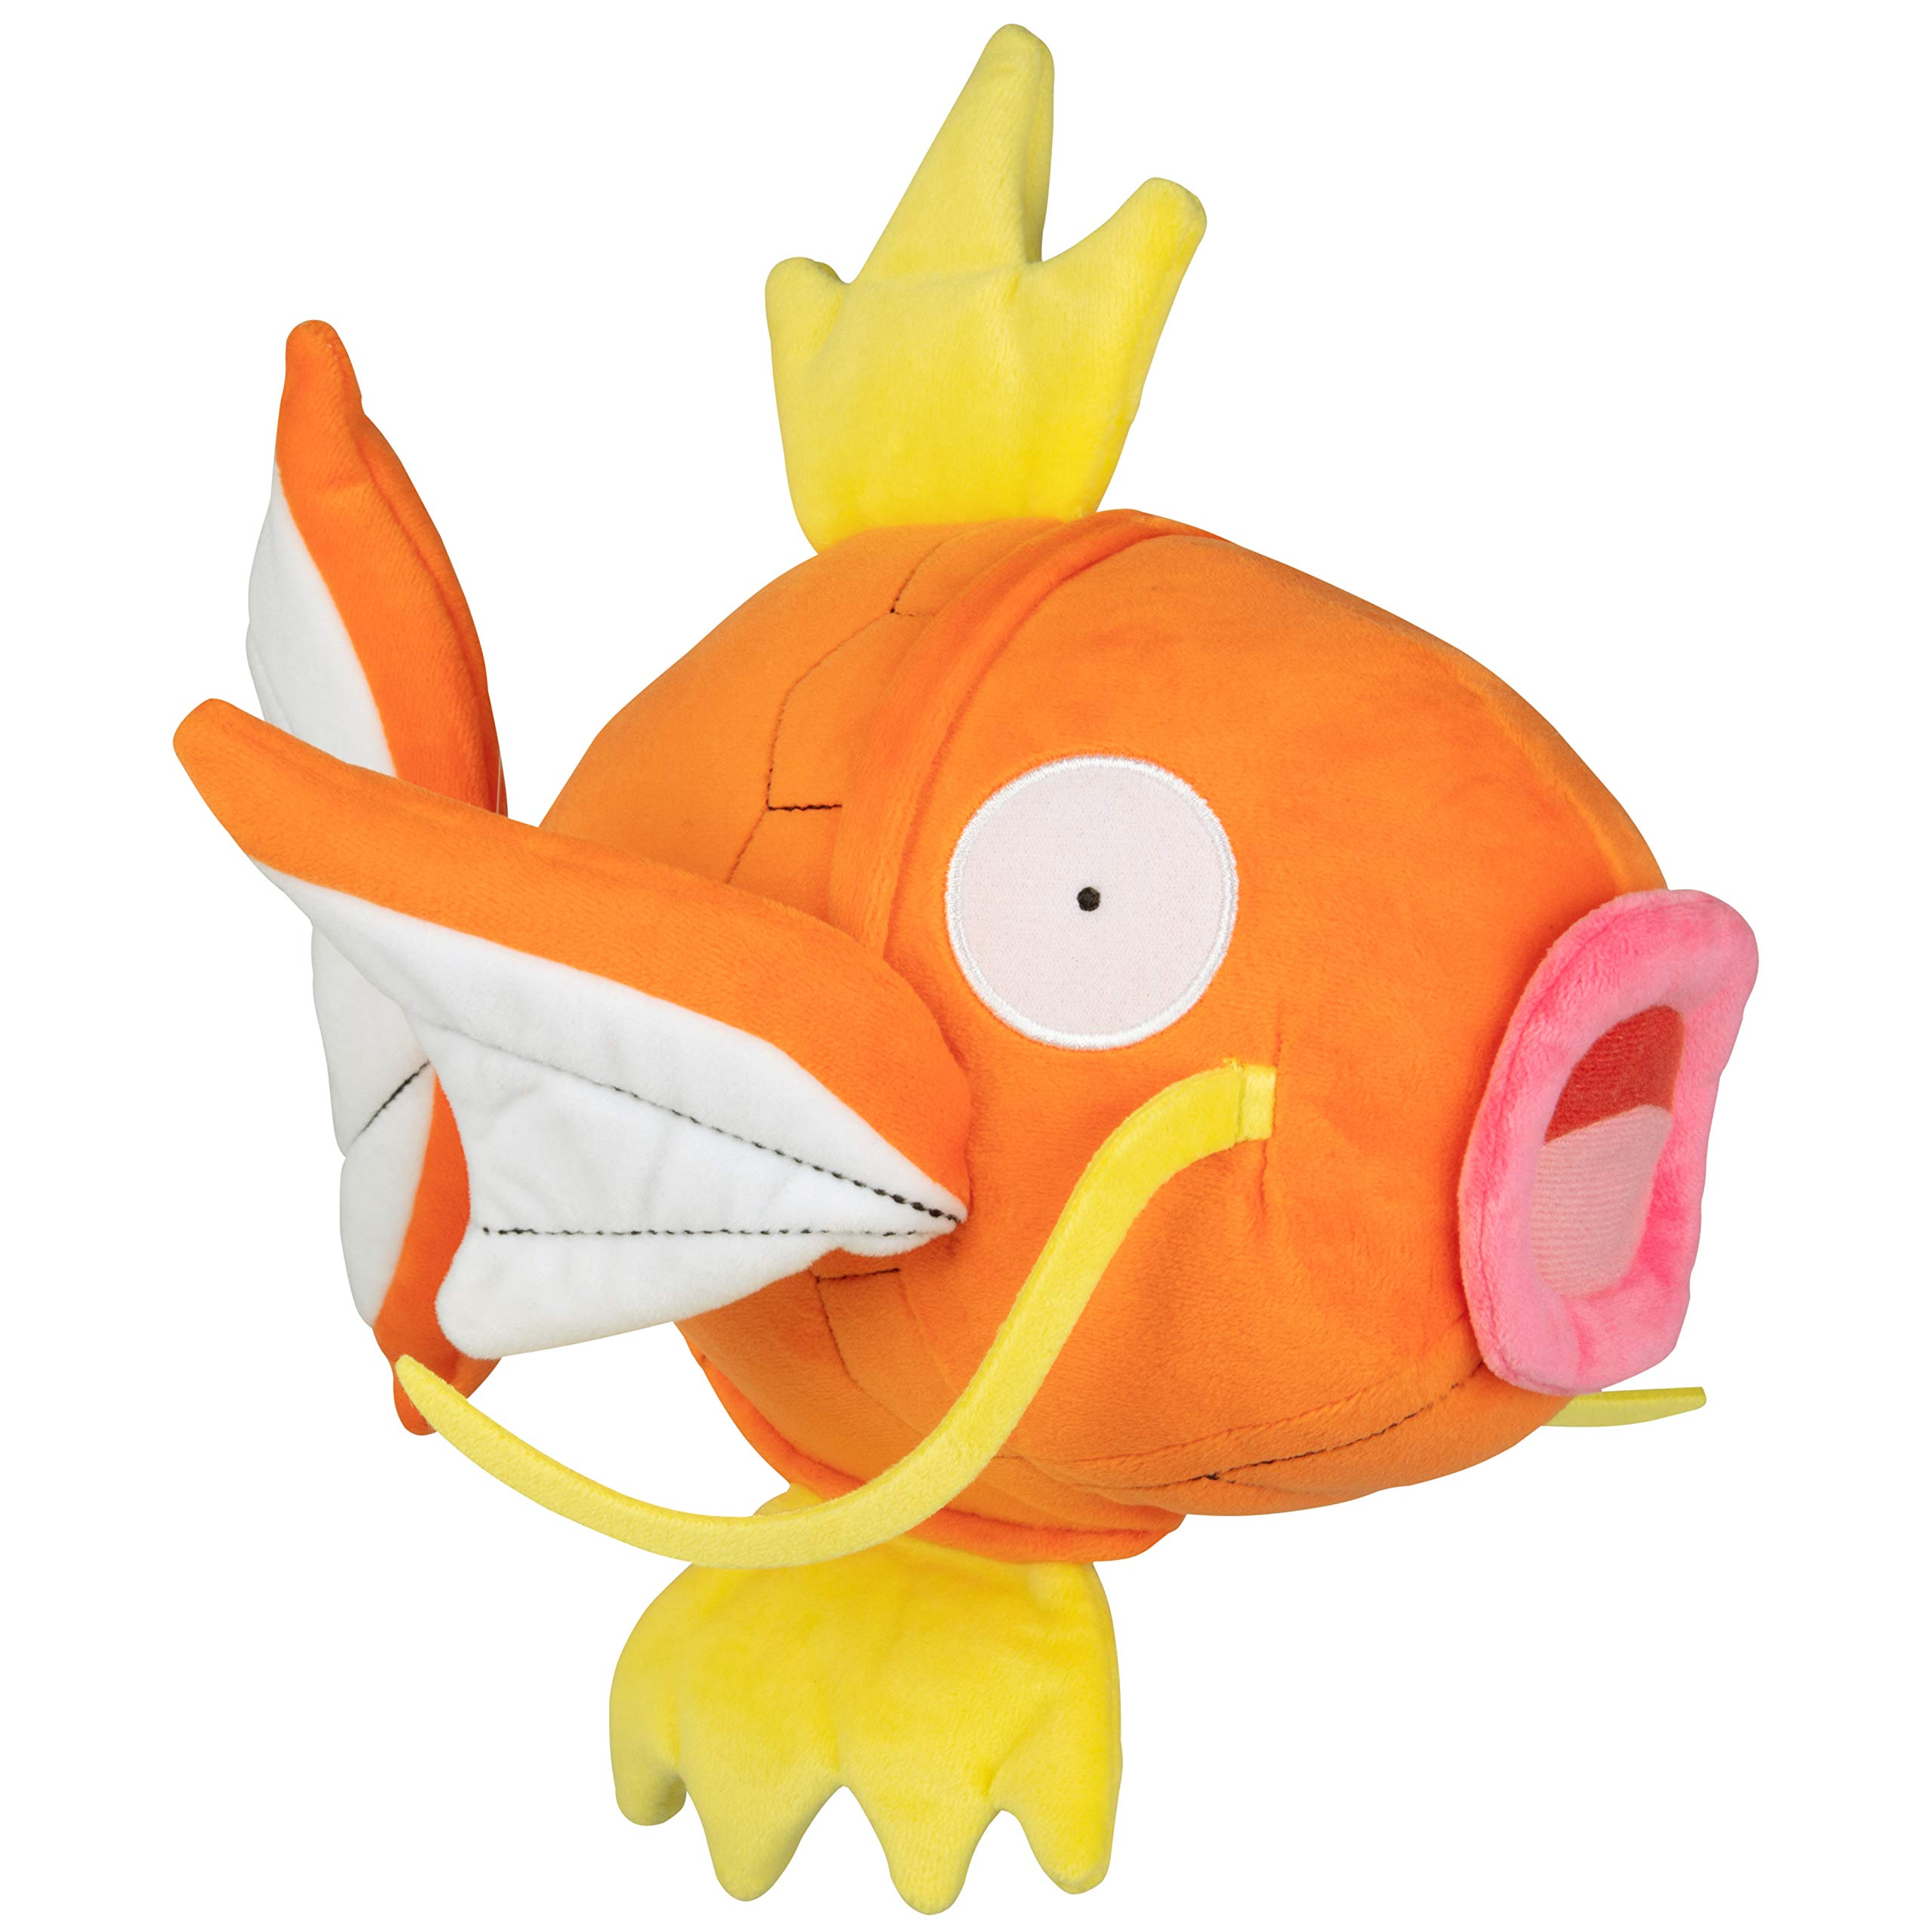 Wicked Cool Toys Pokémon Flopping Magikarp Plush - 10 Inch Interactive Pokemon Fish Toy Flops, Wiggles and Shakes - Age 4+ by Wicked Cool Toys